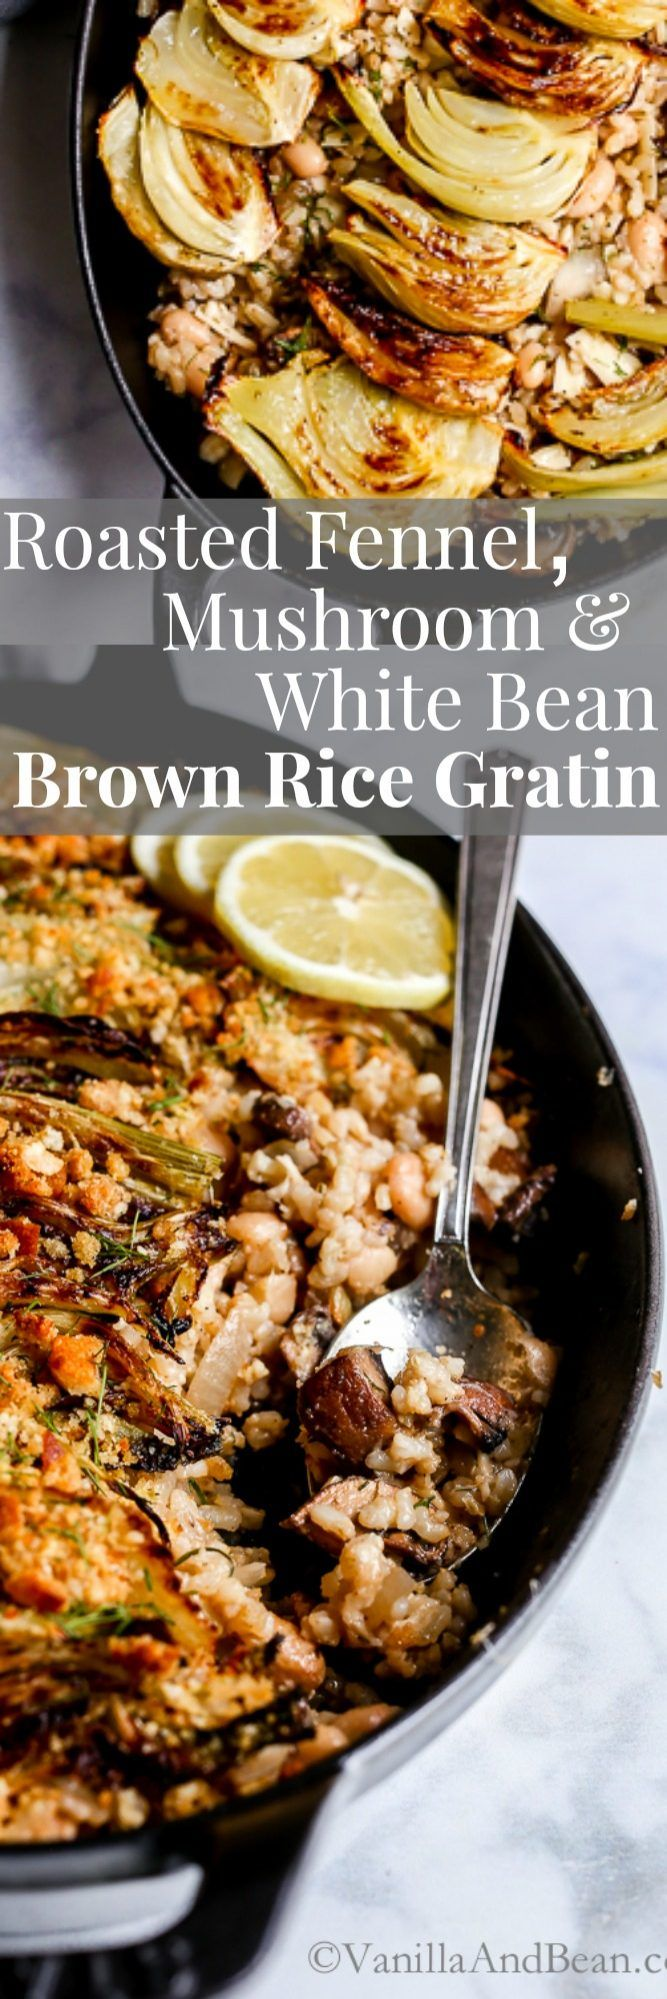 Topped with lemony dijon parmesan breadcrumbs, Roasted Fennel, Mushroom and White Bean Brown Rice Gratin is a hearty vegetarian main.